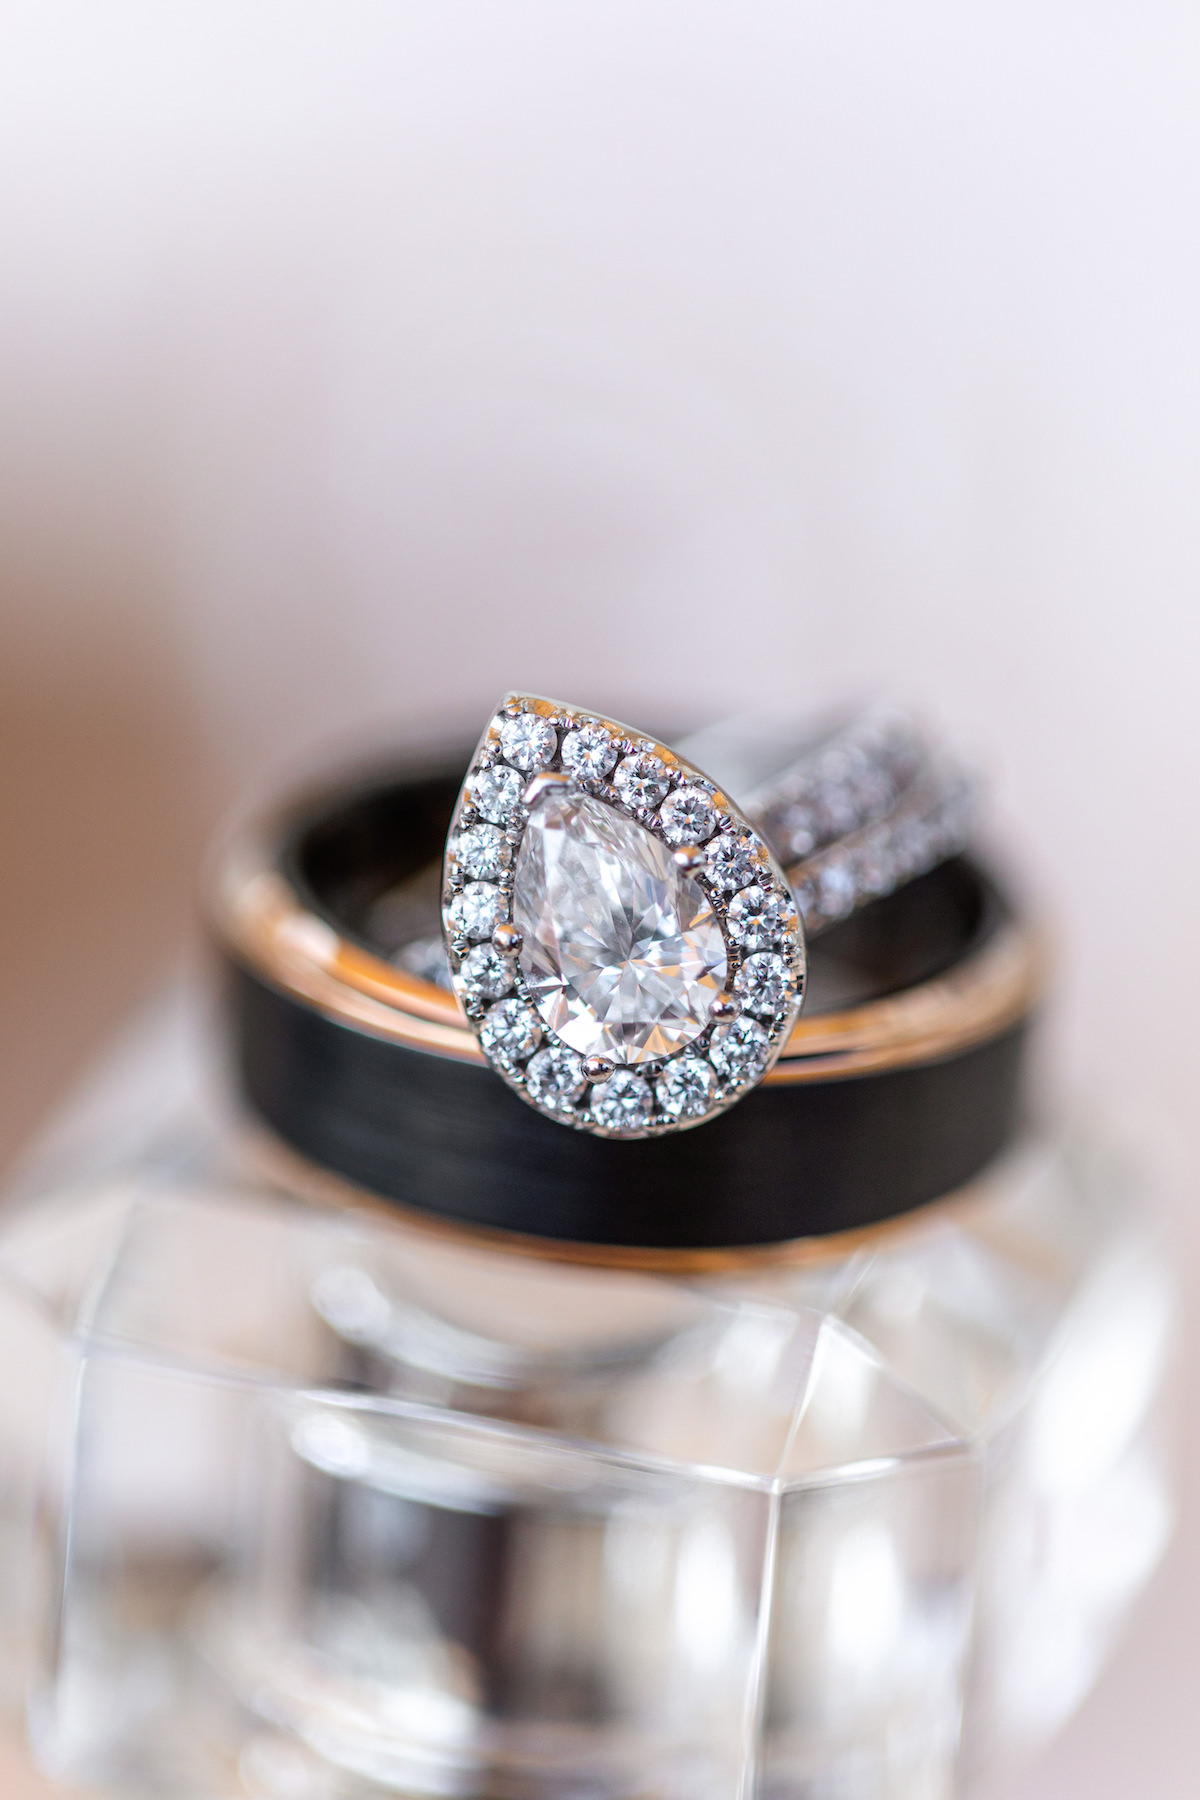 Diamond engagement ring with pear shape stone and halo - Holly Sigafoos Photo